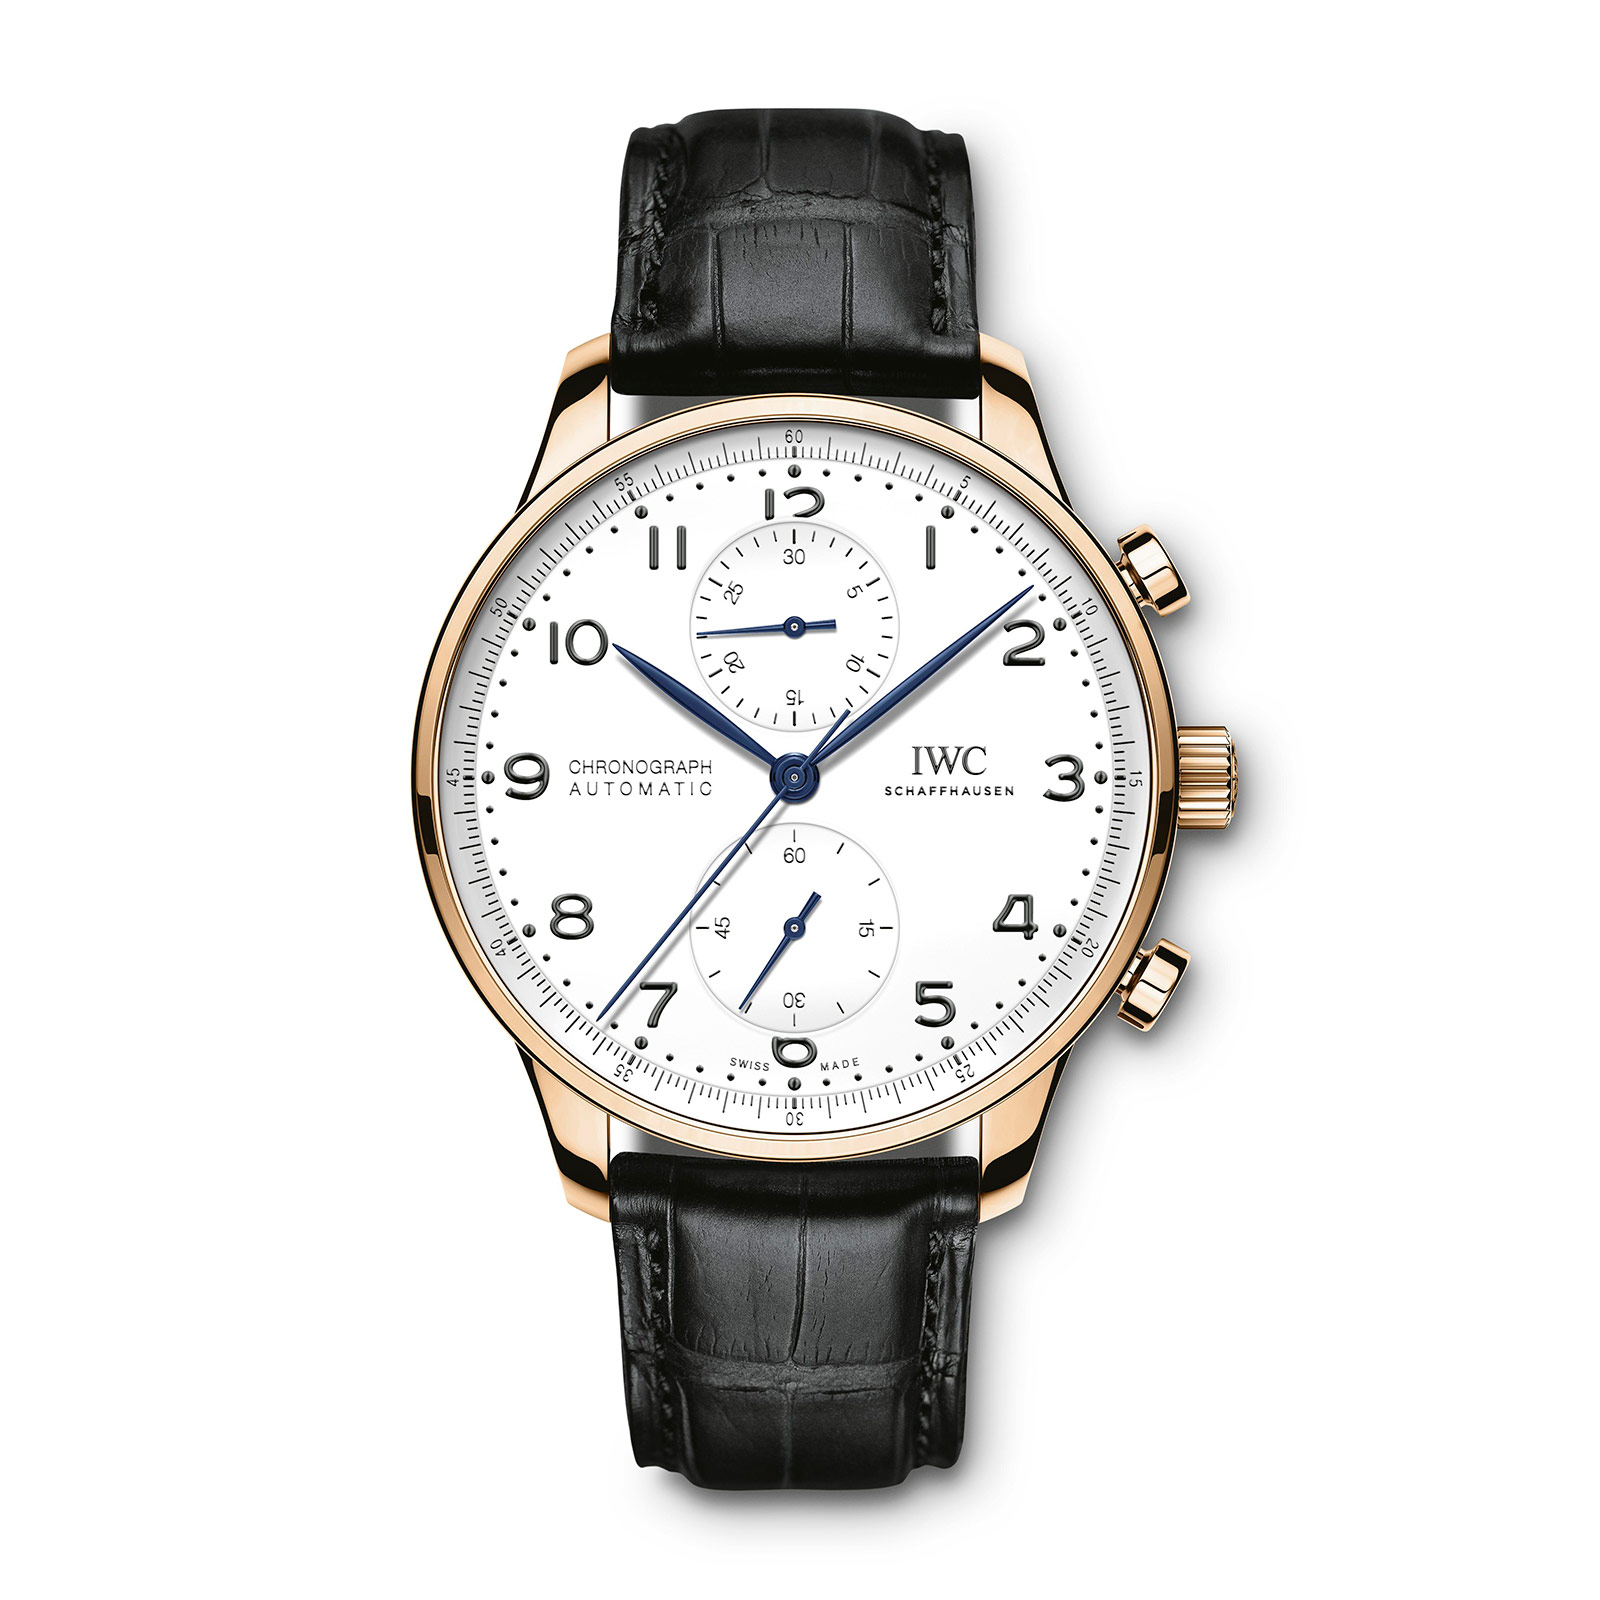 IWC Portugieser Chronograph 150 Years red gold 1